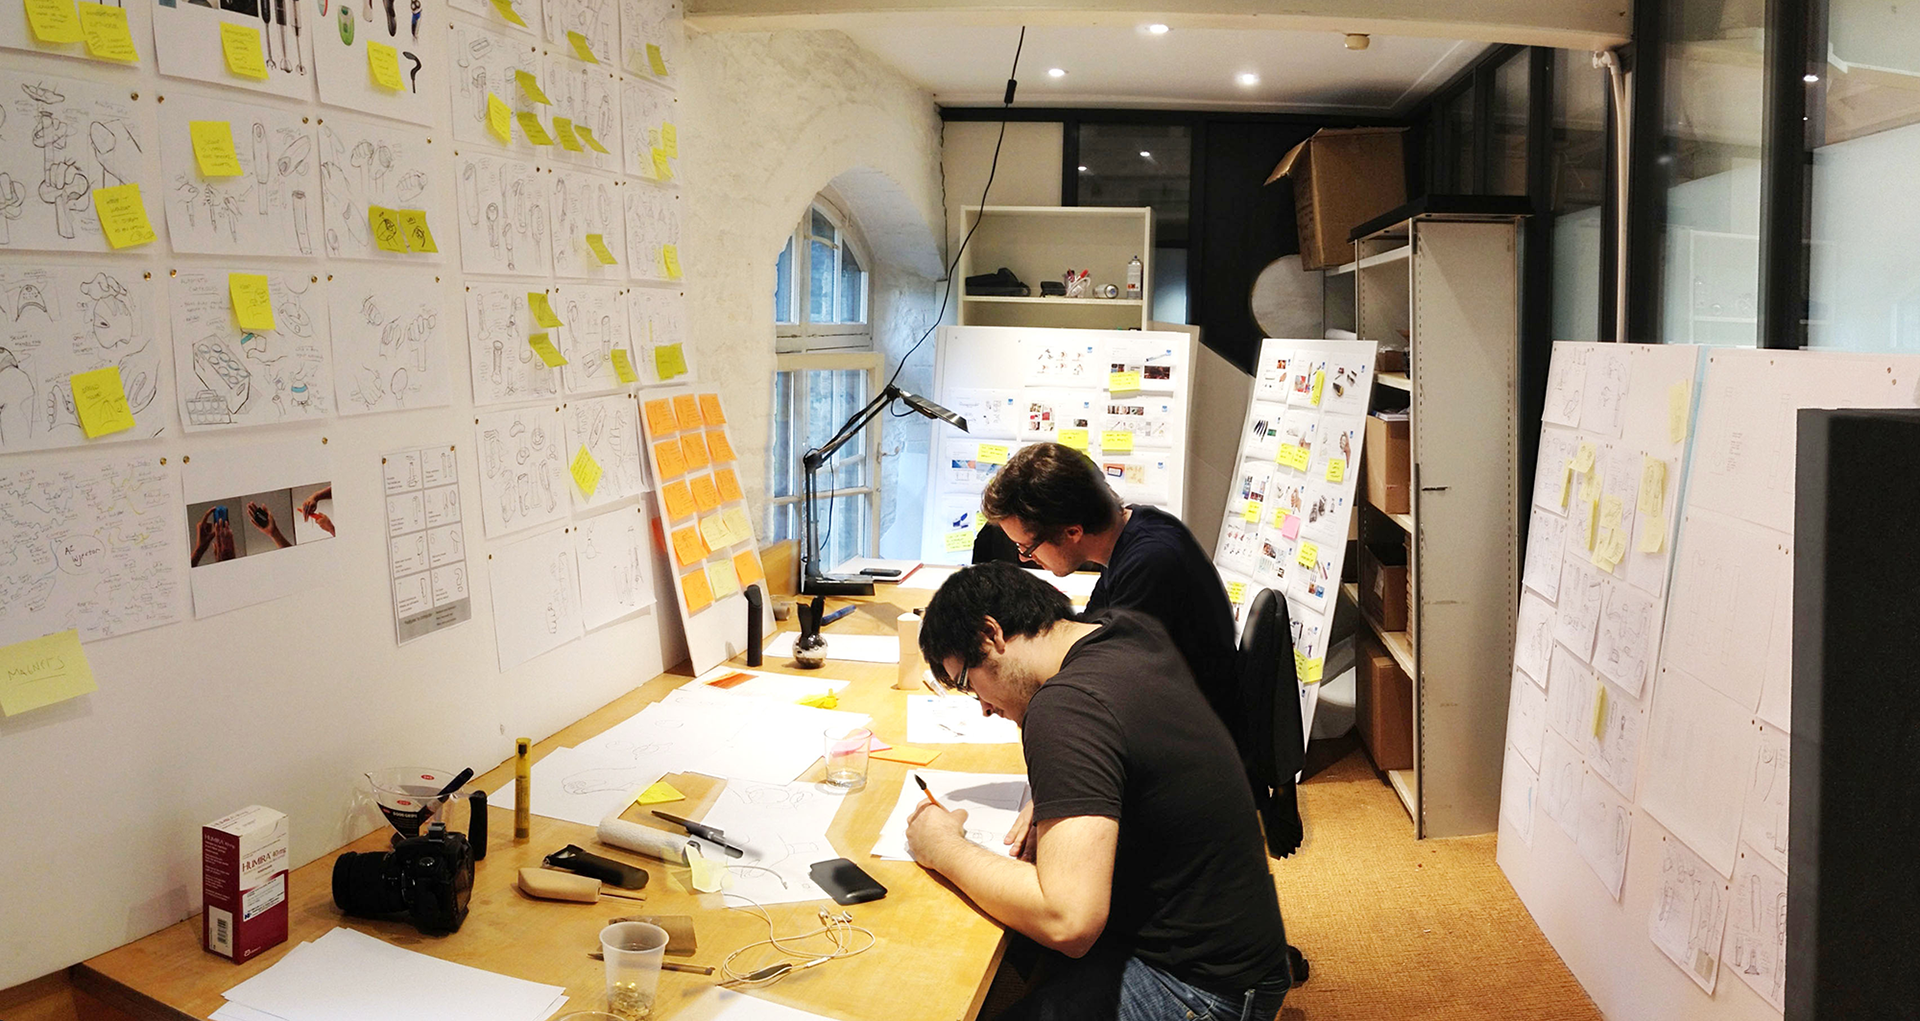 The design team created dozens of concepts via sketches and created quick foam models to help test ergonomic ideas, testing them with colleagues around the company for fast feedback